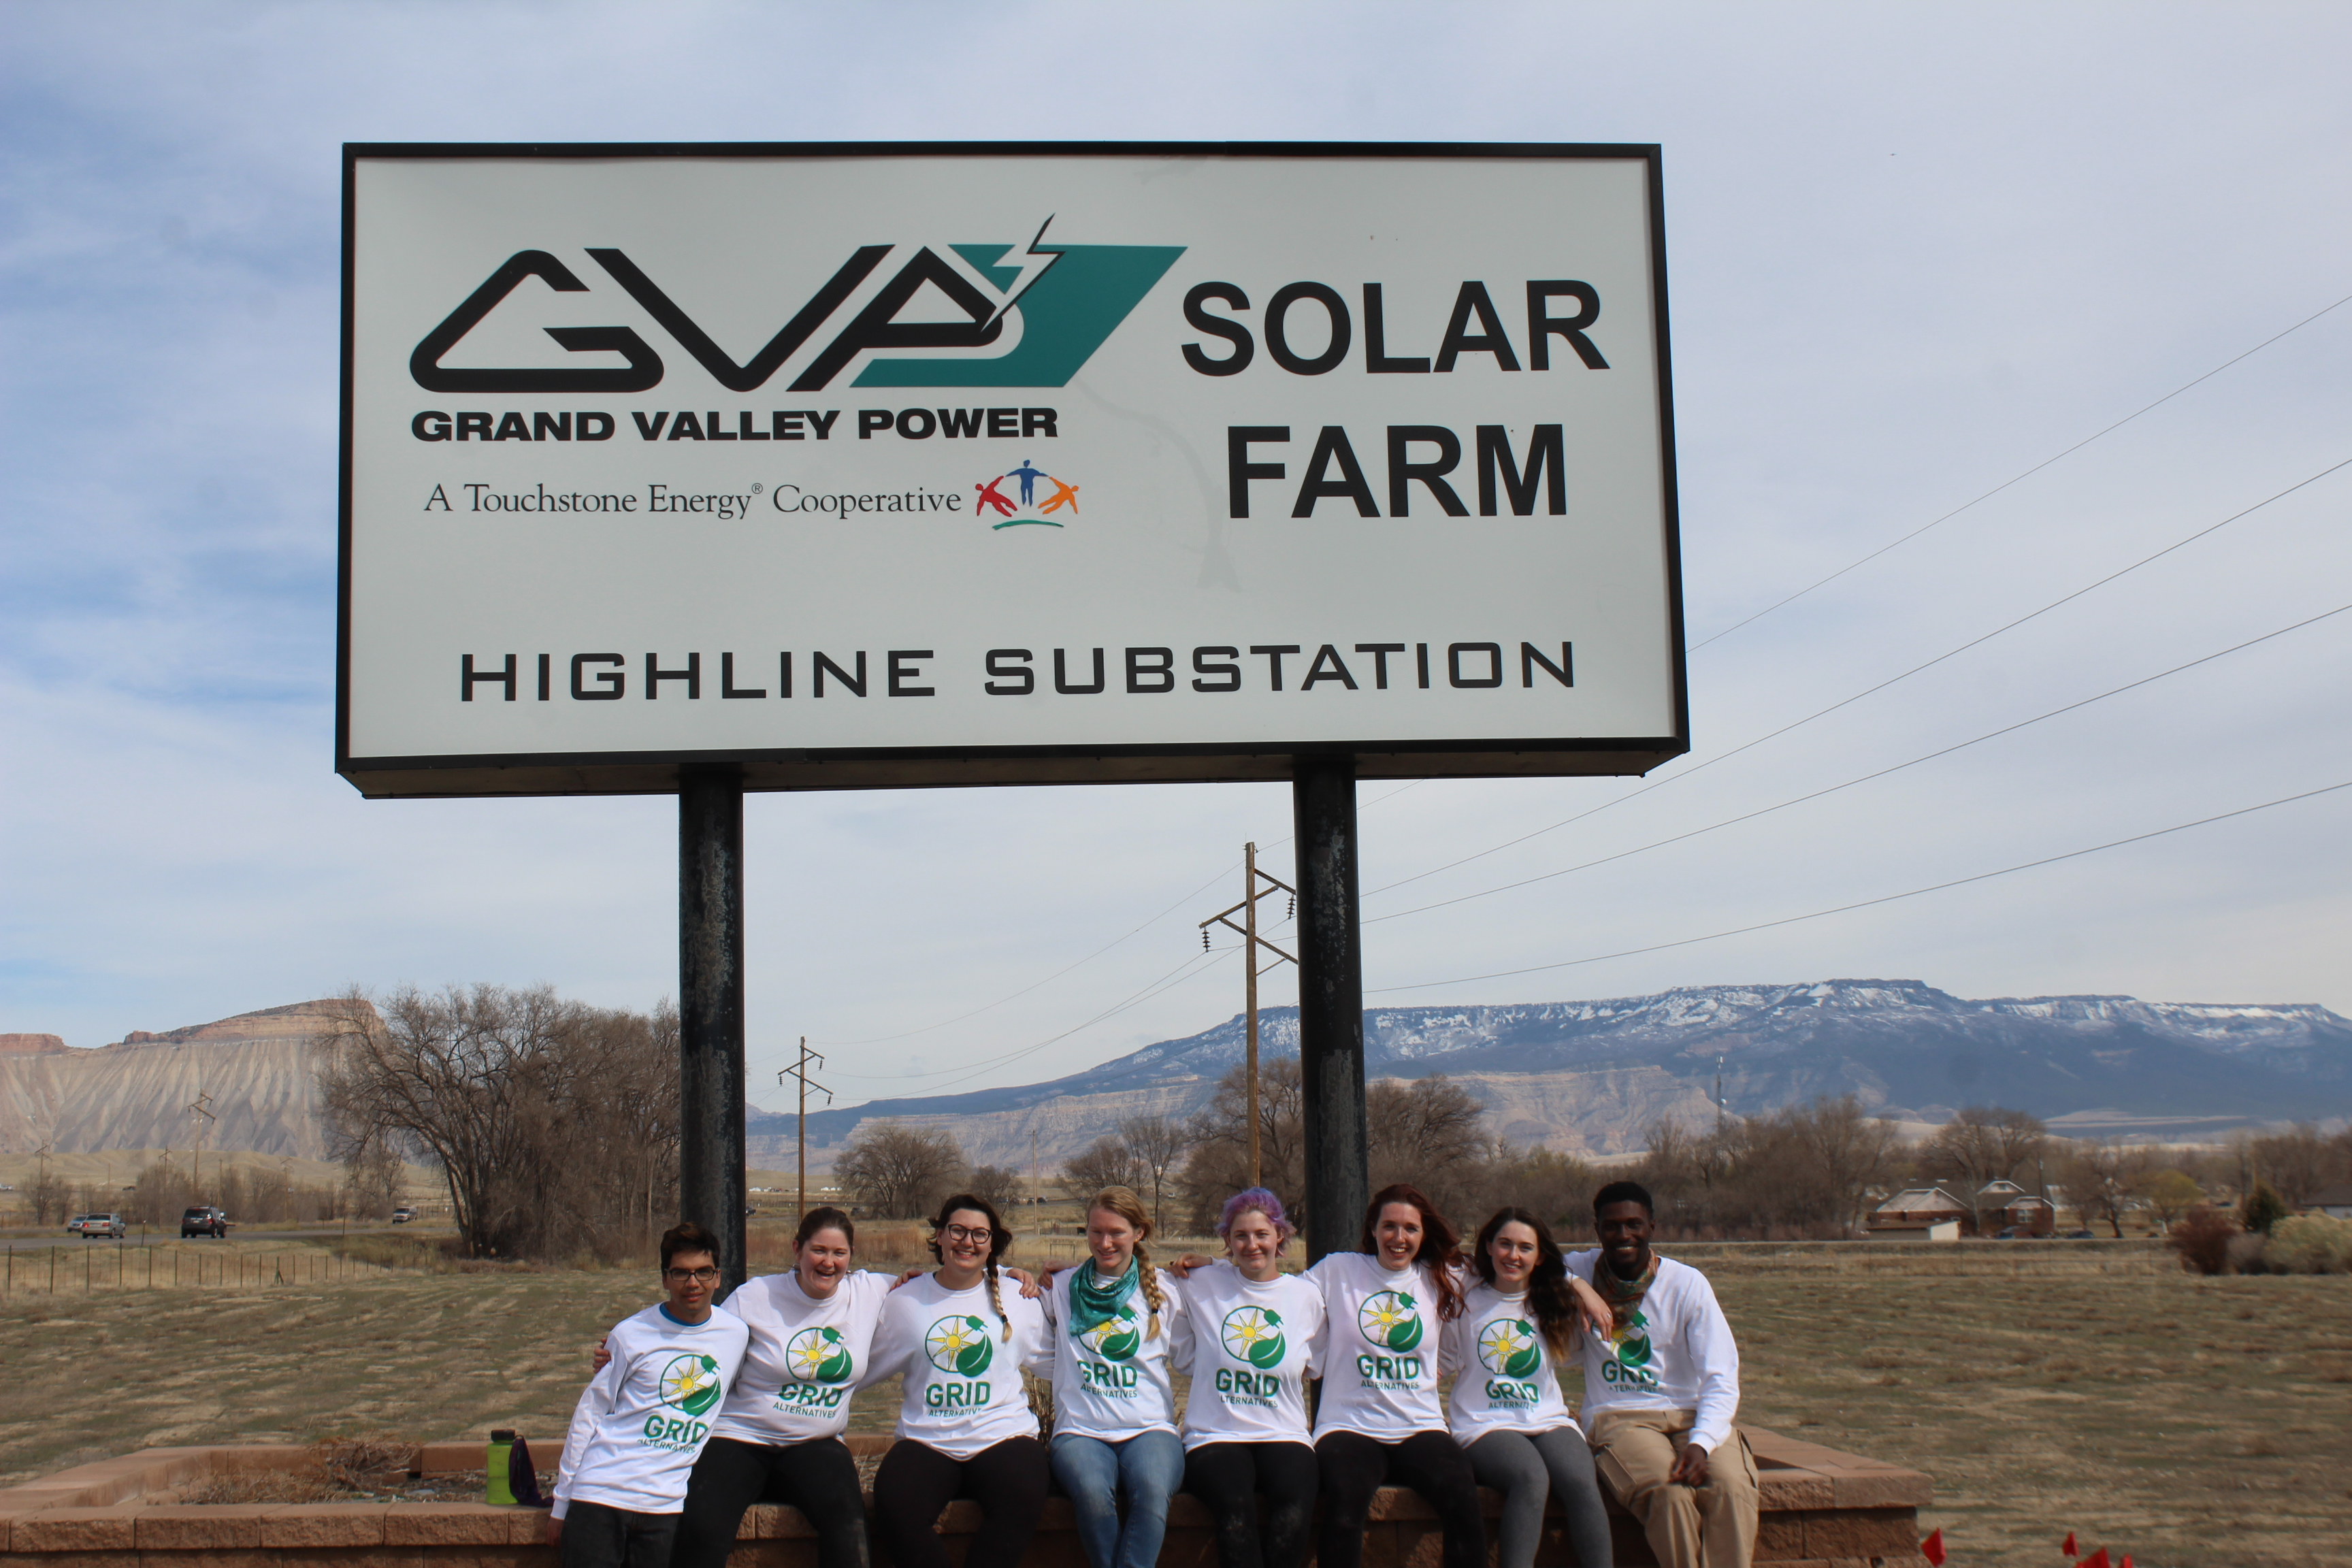 Students standing in front of sign at Grand Valley Power utility community solar farm site